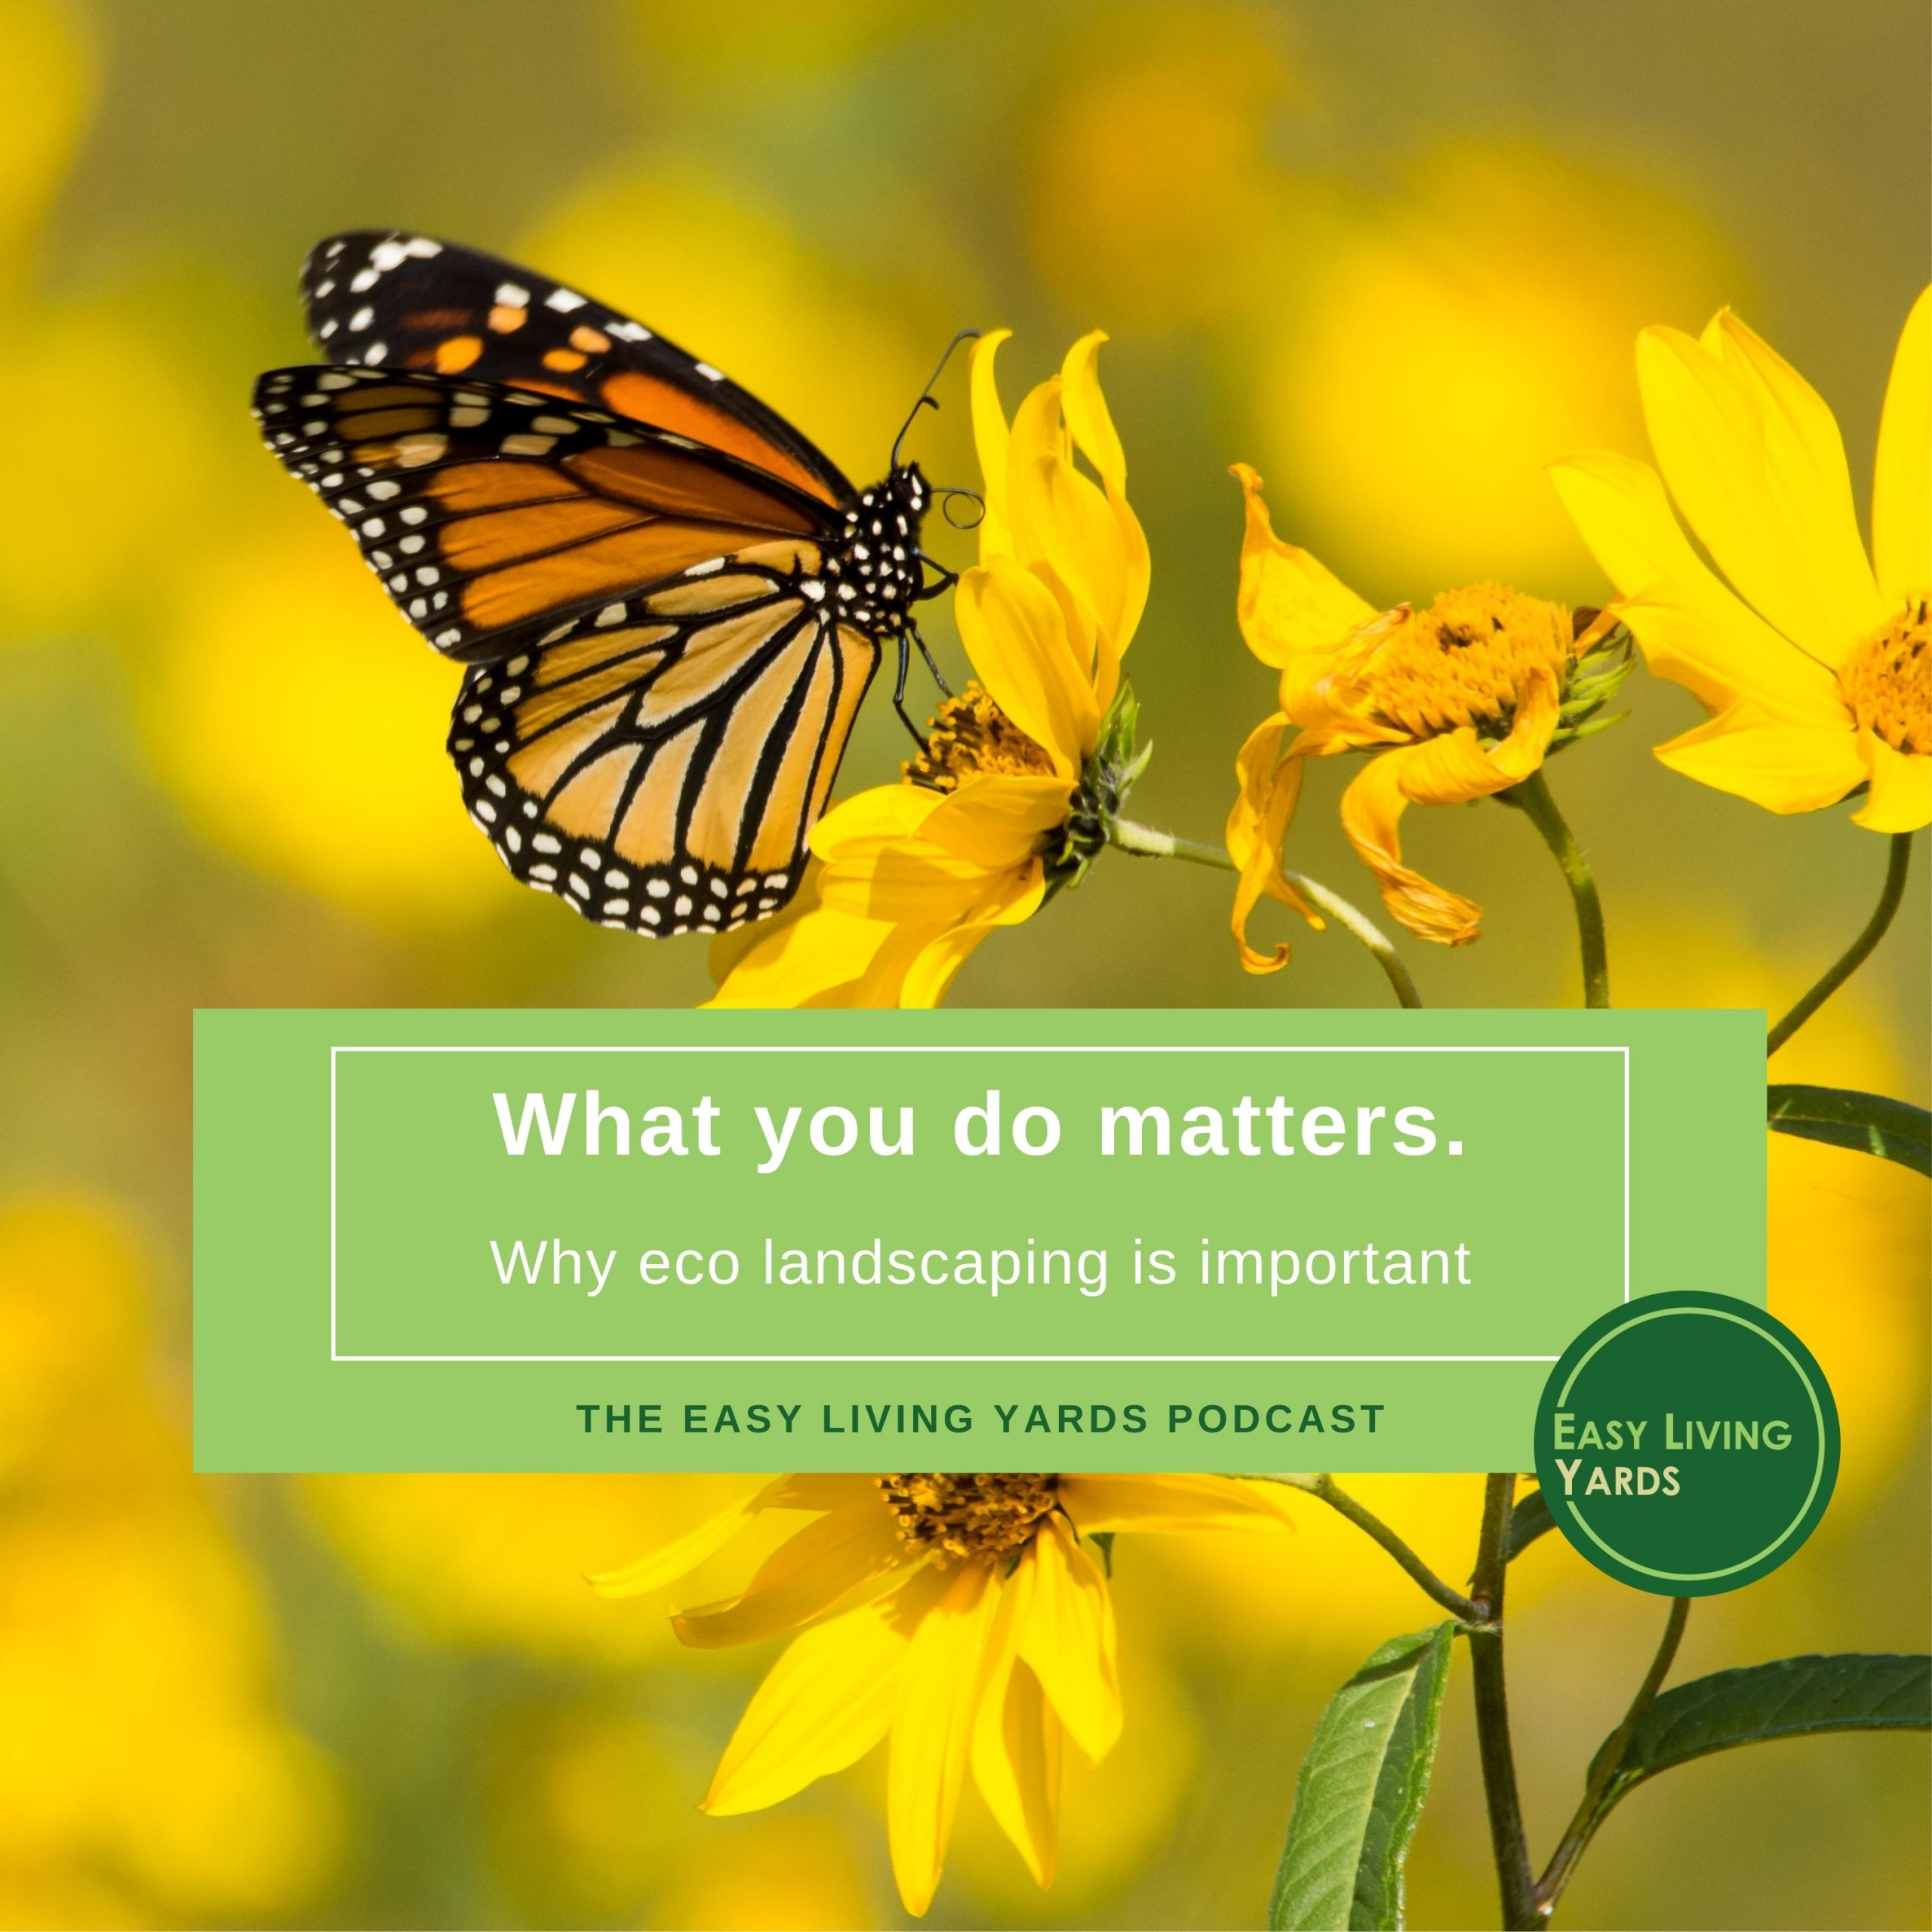 Ecological Landscaping - Why you matter